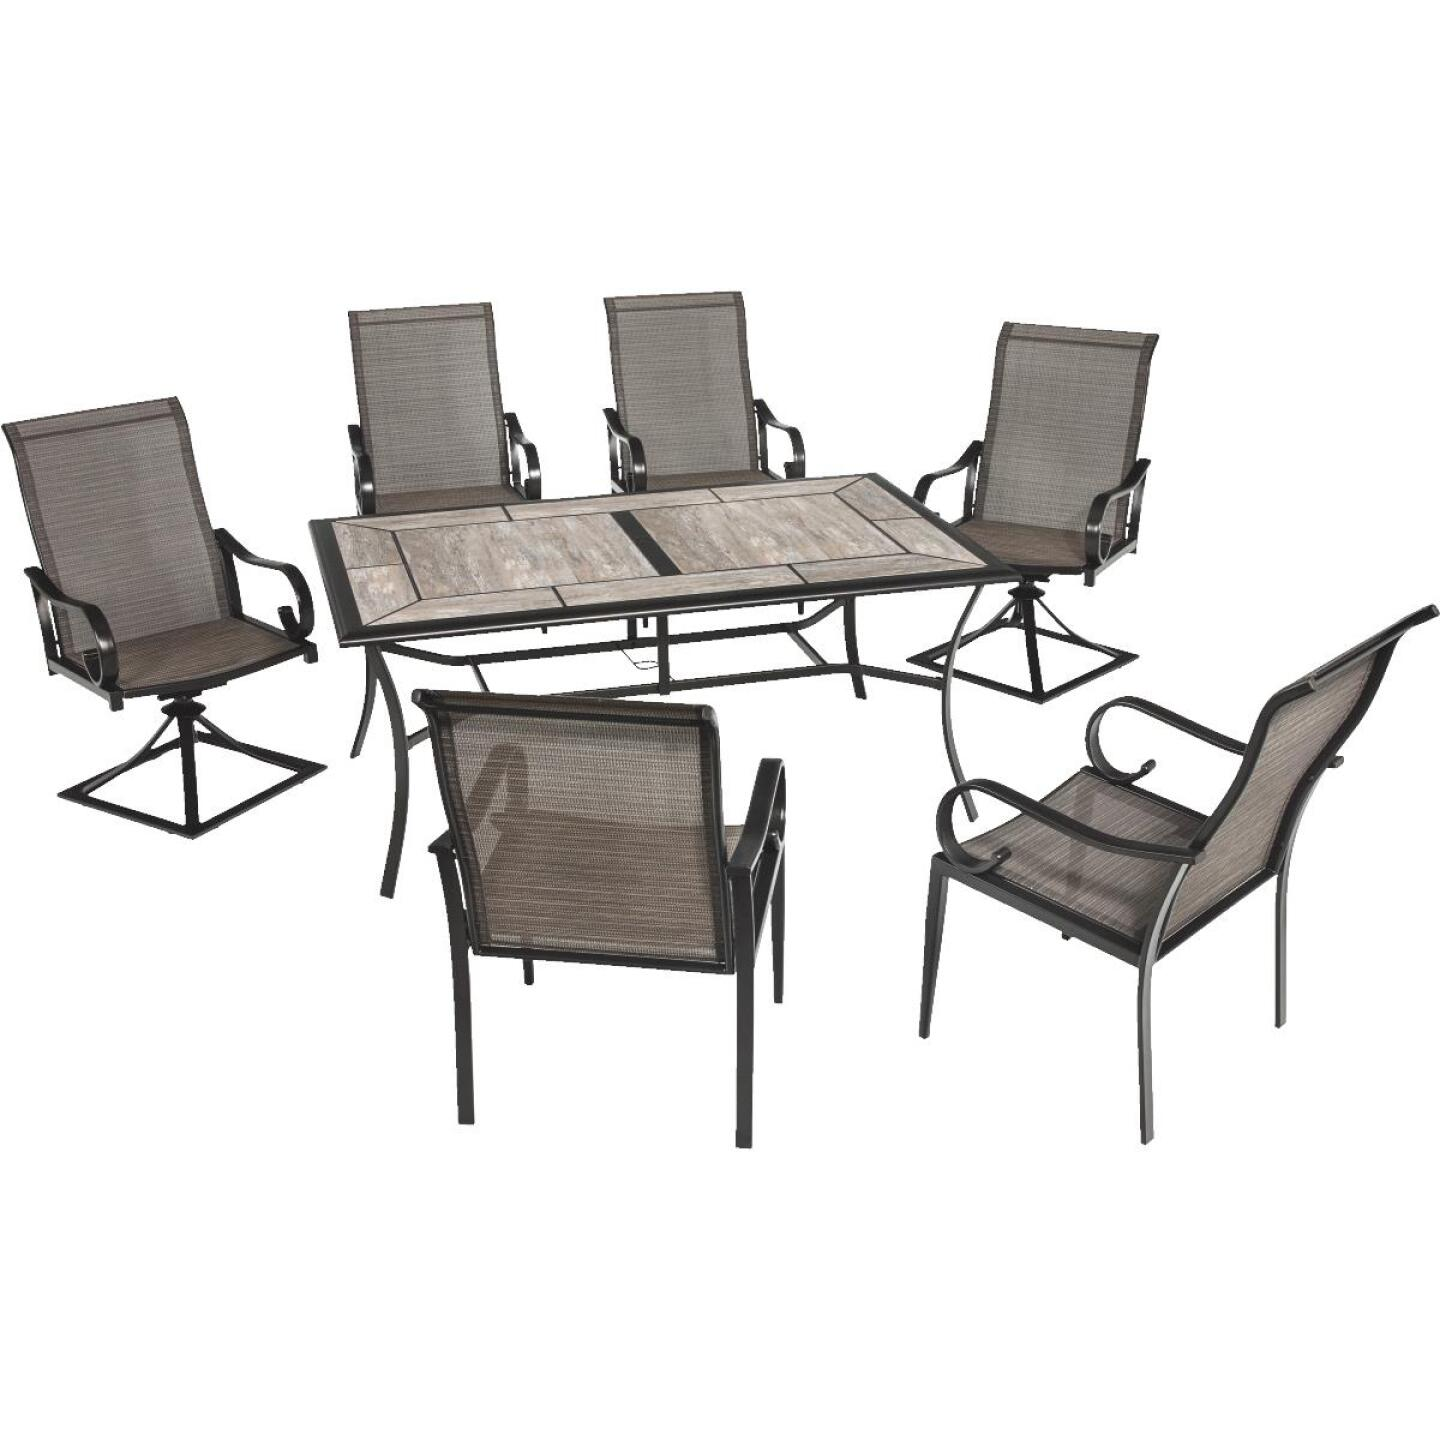 Outdoor Expressions Berkshire 7-Piece Dining Set Image 165